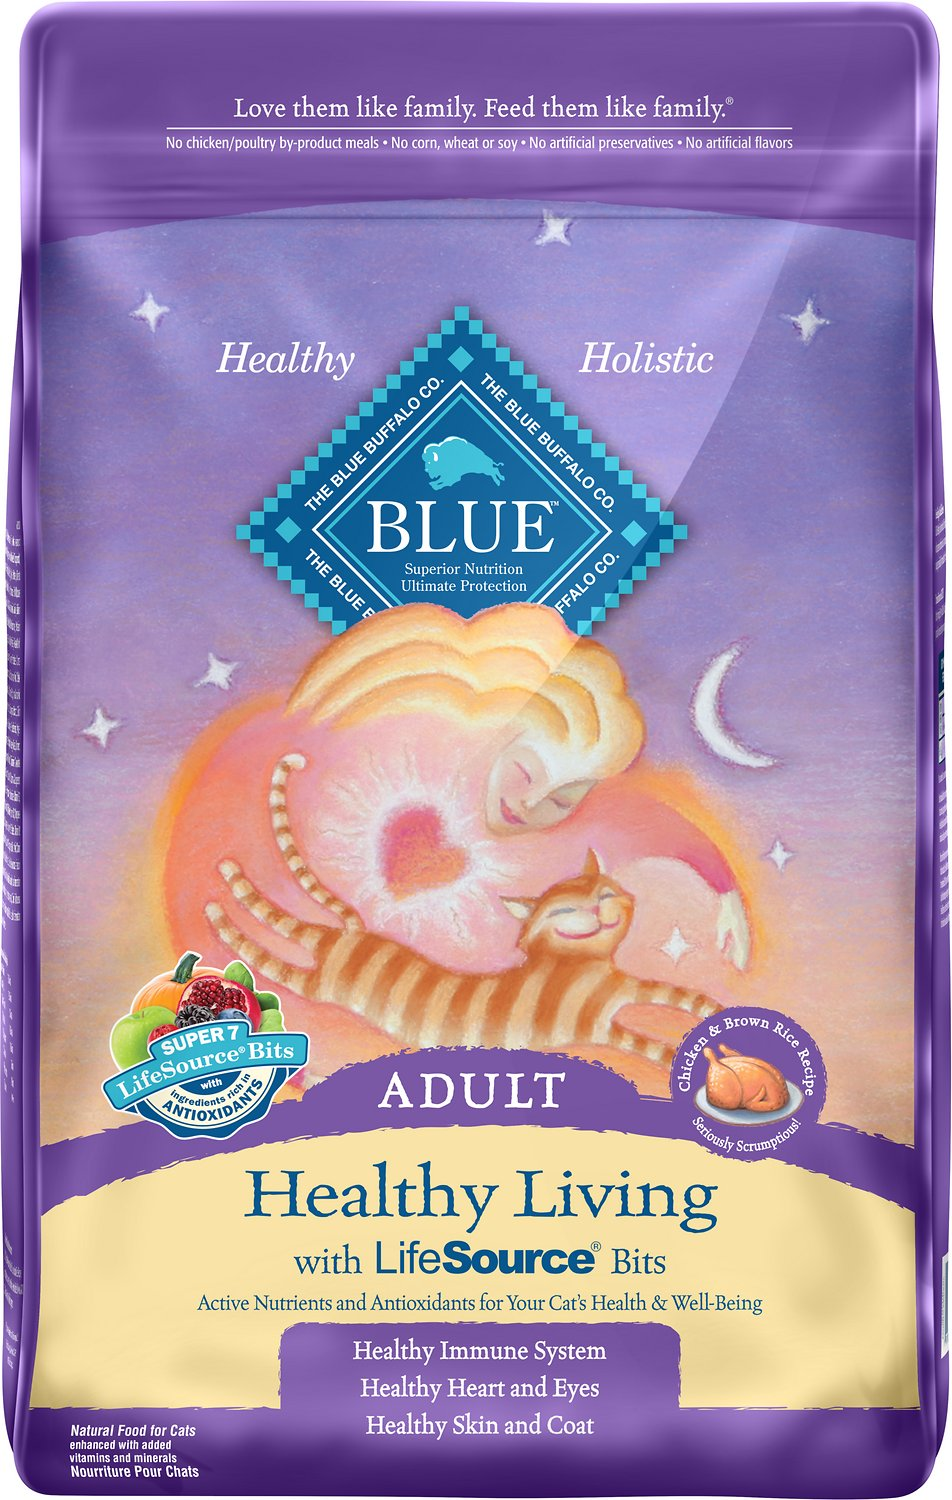 Blue Buffalo Healthy Living Chicken & Brown Rice Recipe Adult Dry Cat Food Image